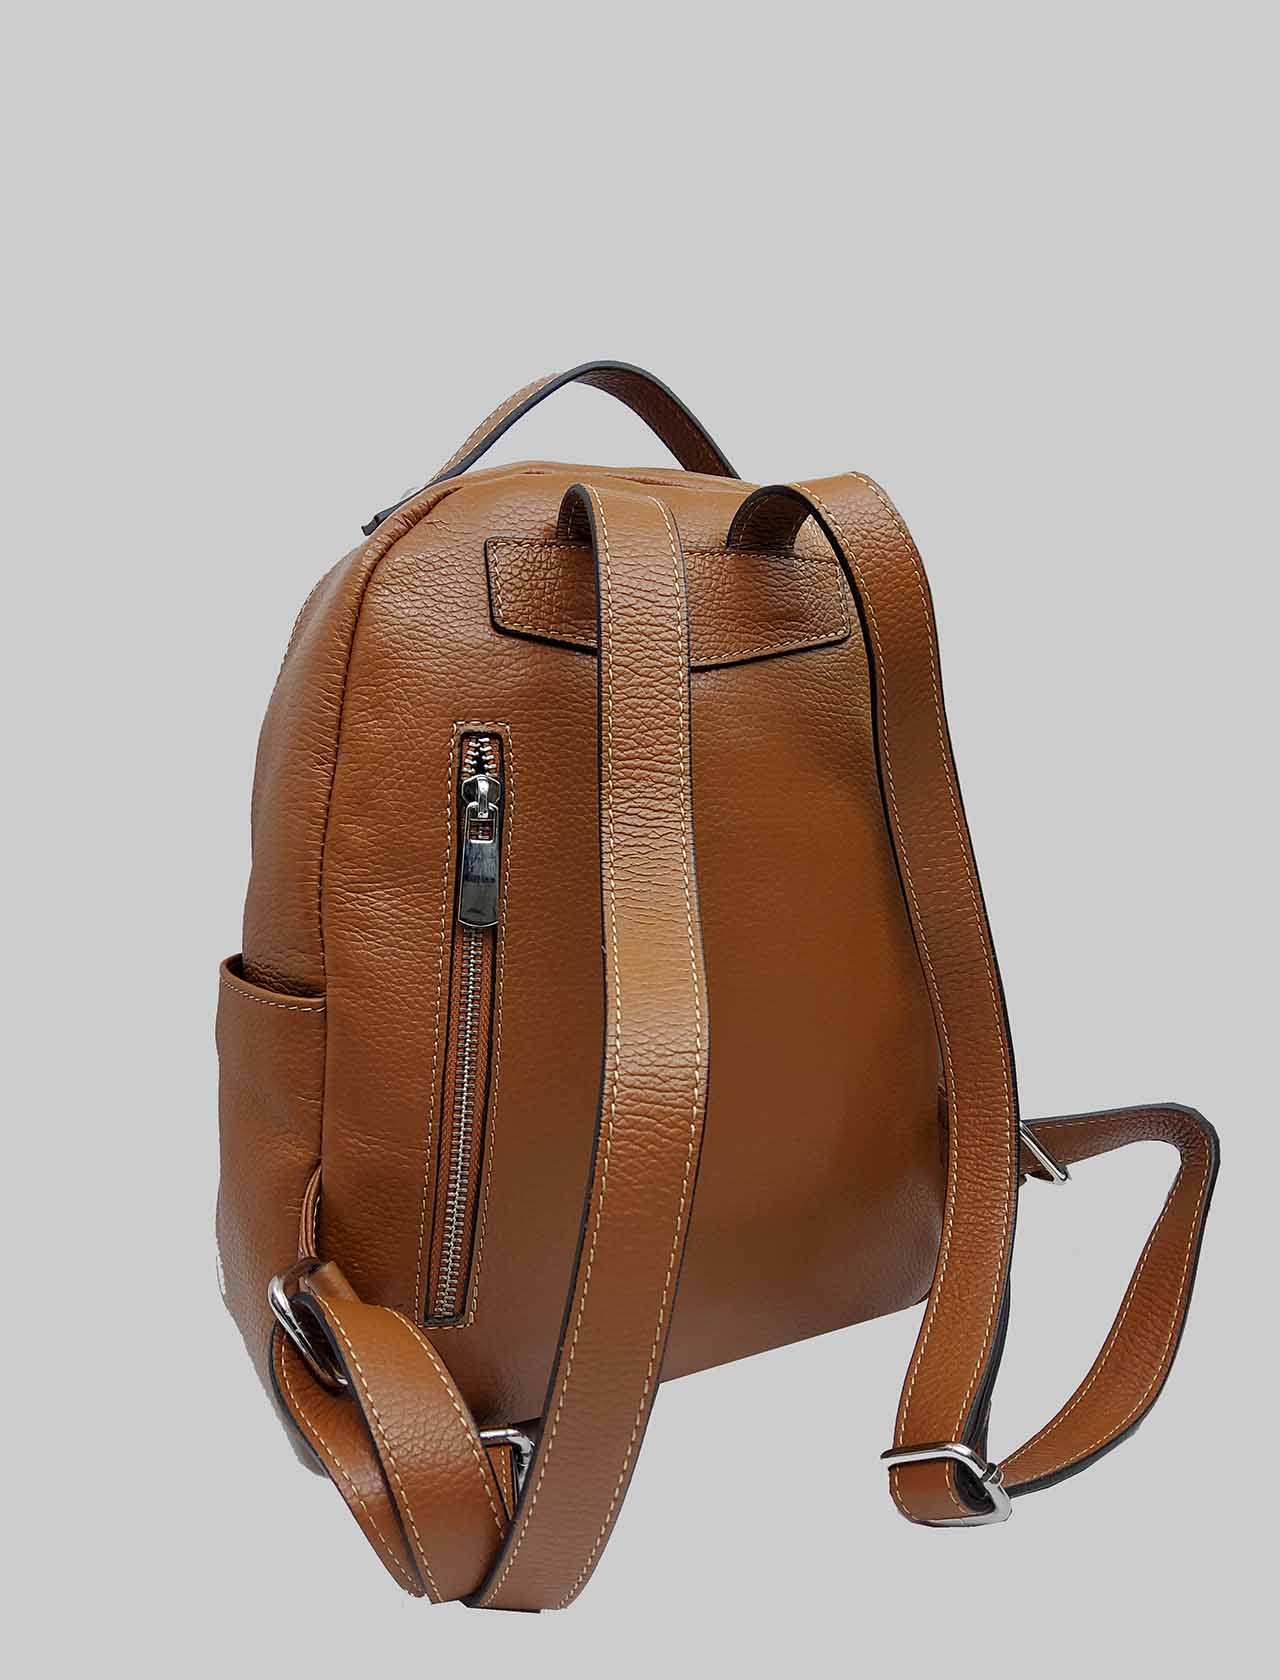 Woman Backpacks in Tan Leather with Multicolor Closure Zip Spatarella   Bags and backpacks   PE0215014